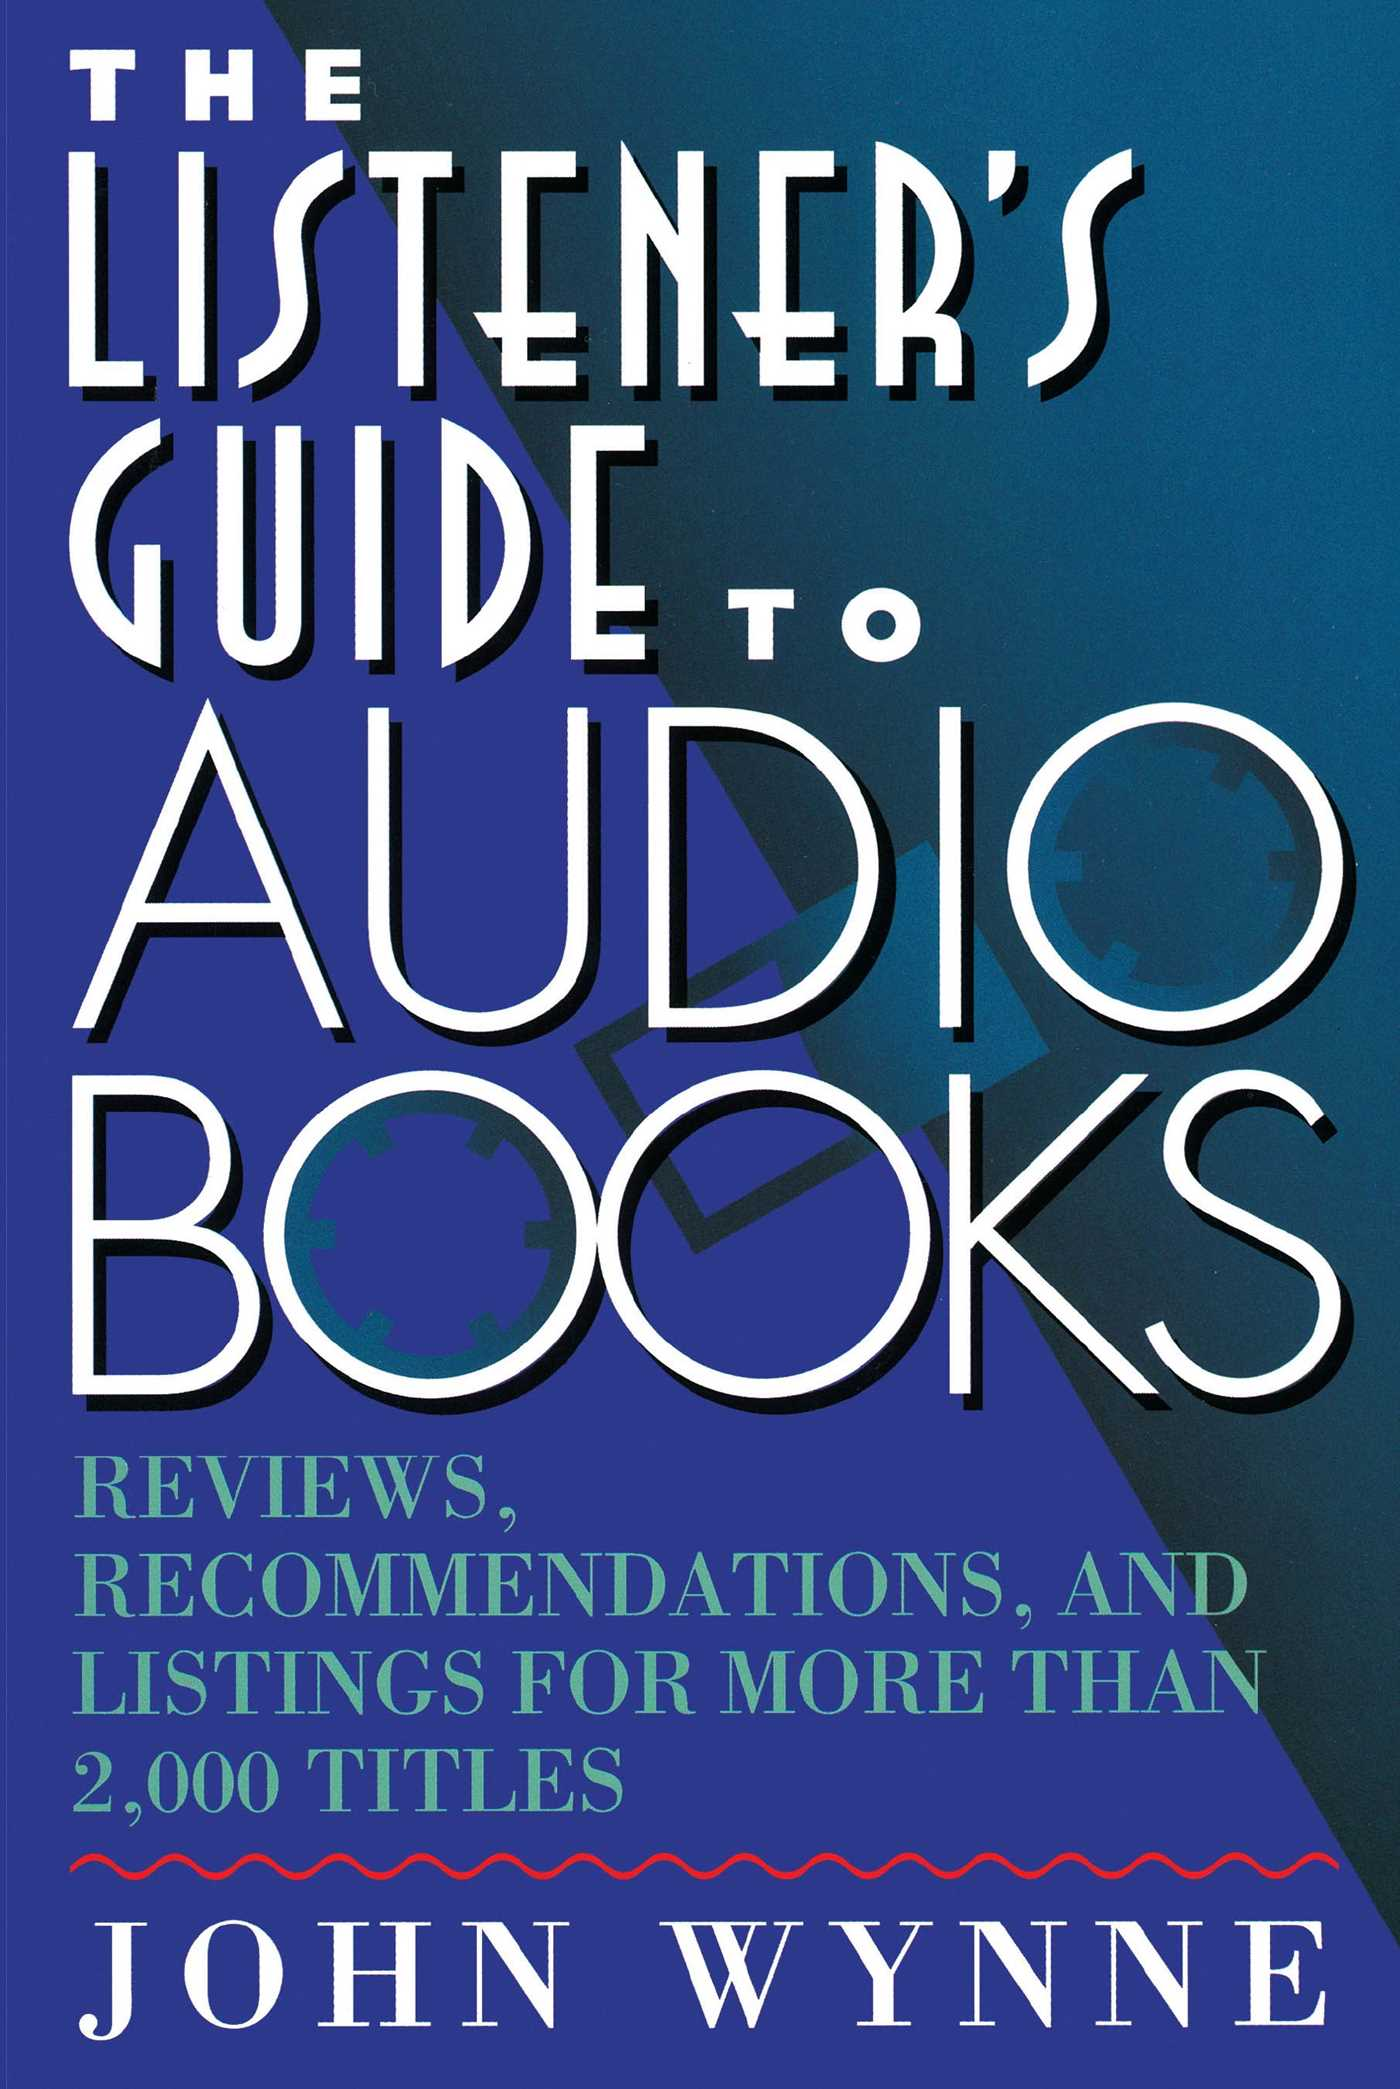 Listeners guide to audio books 9780684802398 hr